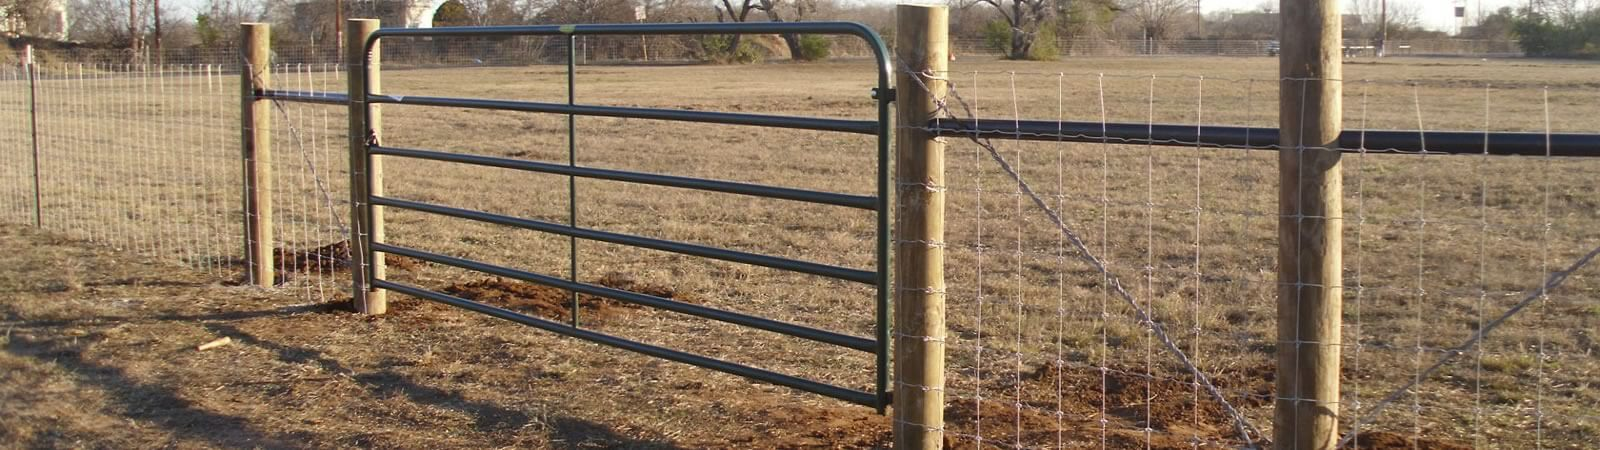 Field & Ranch Fencing